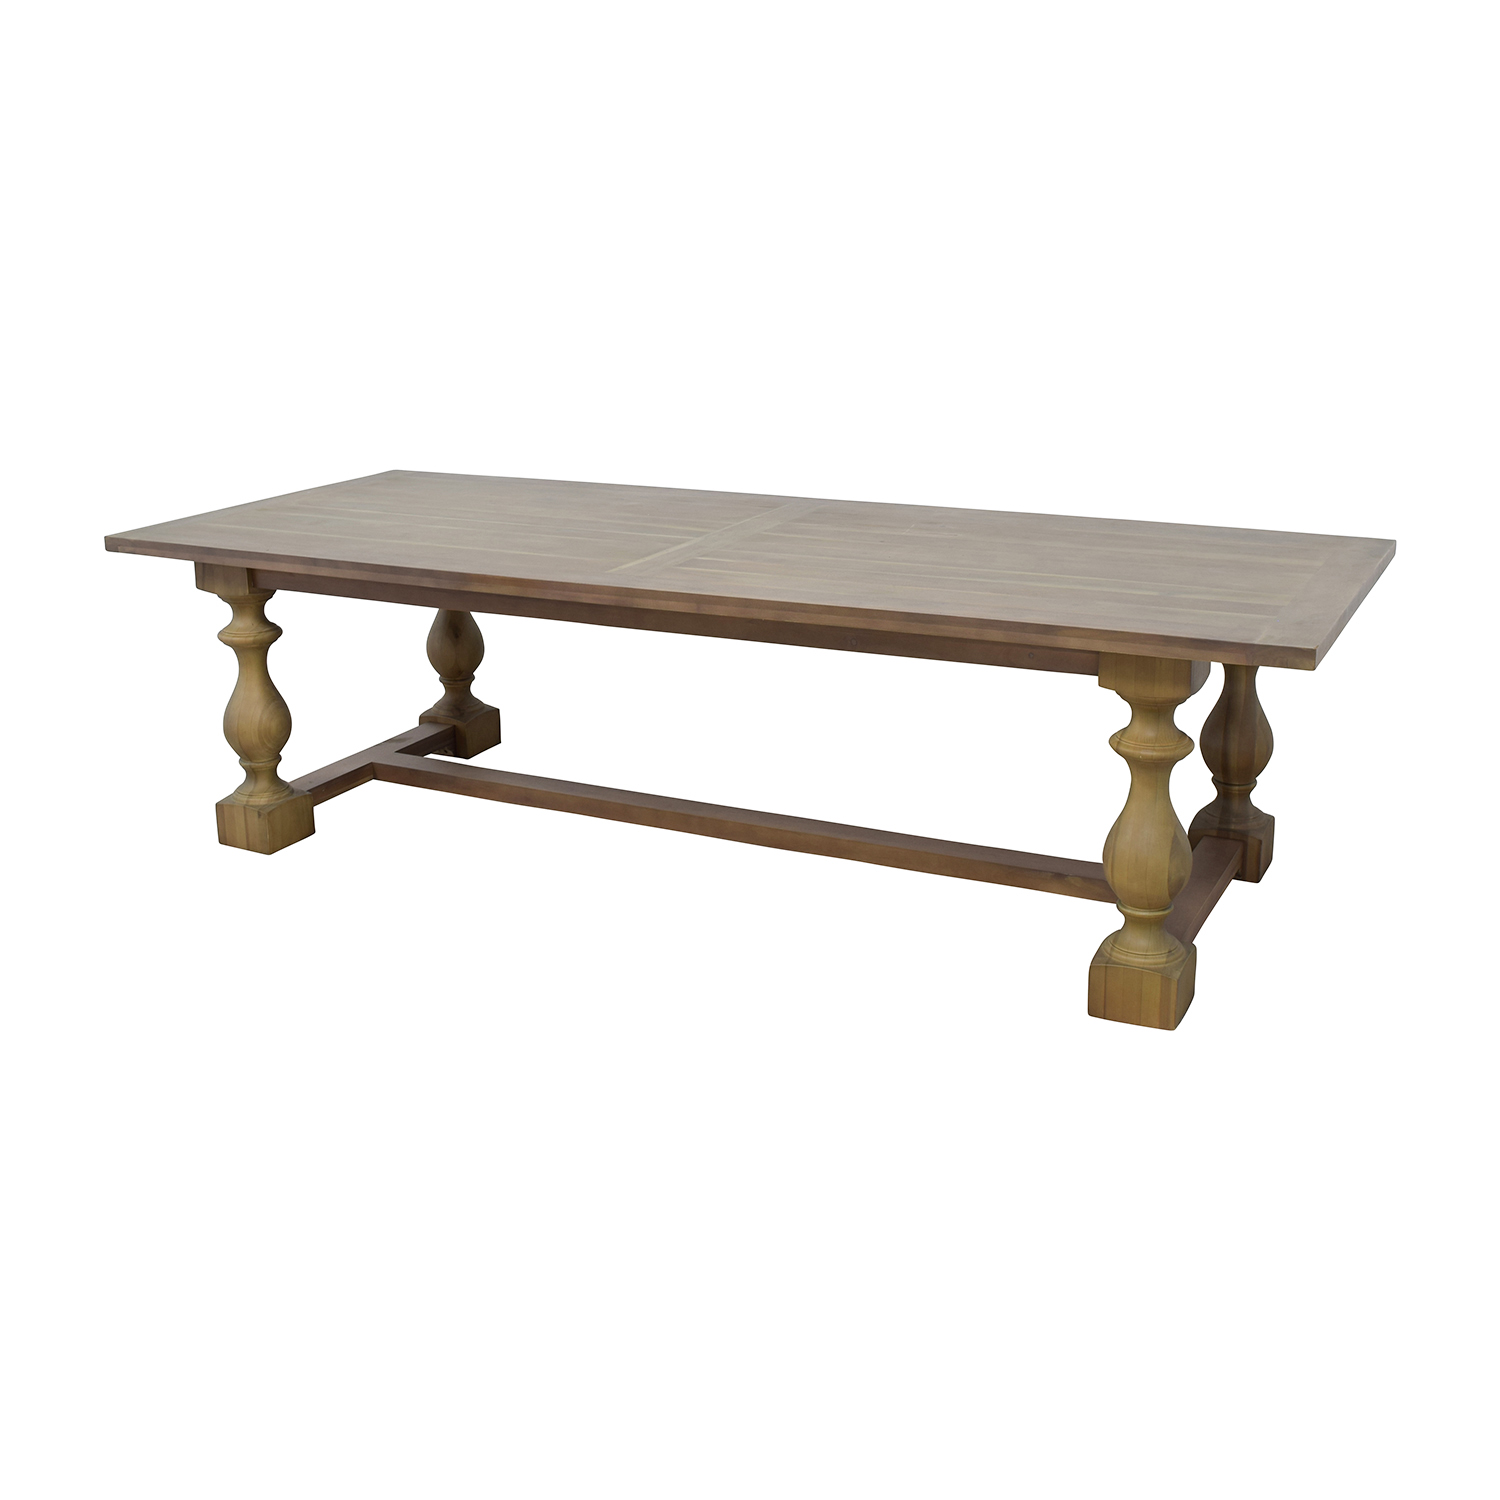 ... Restoration Hardware Restoration Hardware 17th Century Monastery  Rectangular Dining Table Dinner Tables ... Part 29